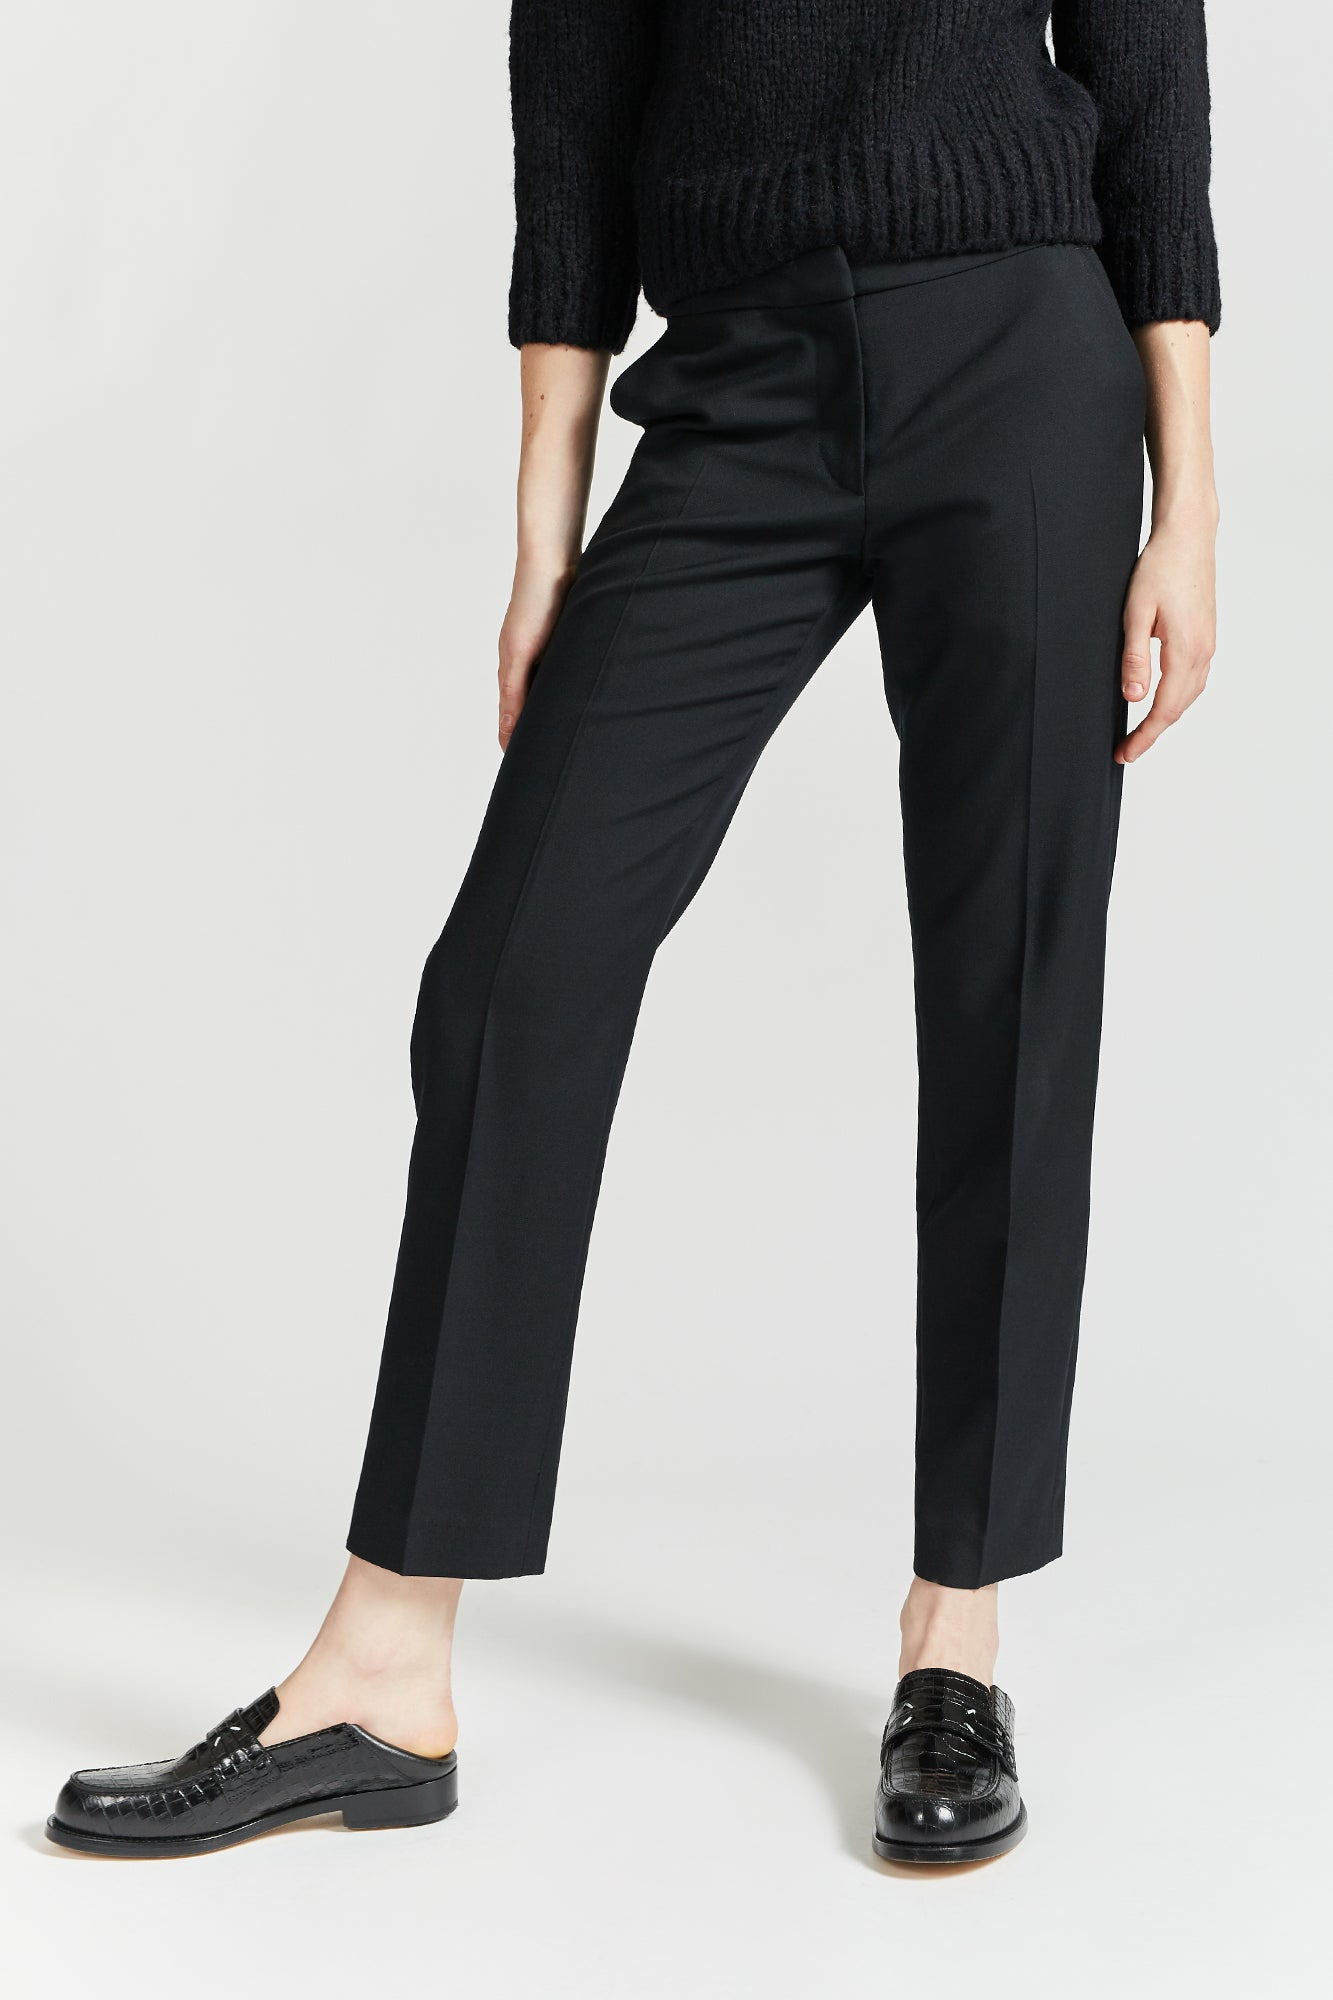 Dries Van Noten Poumas Pant